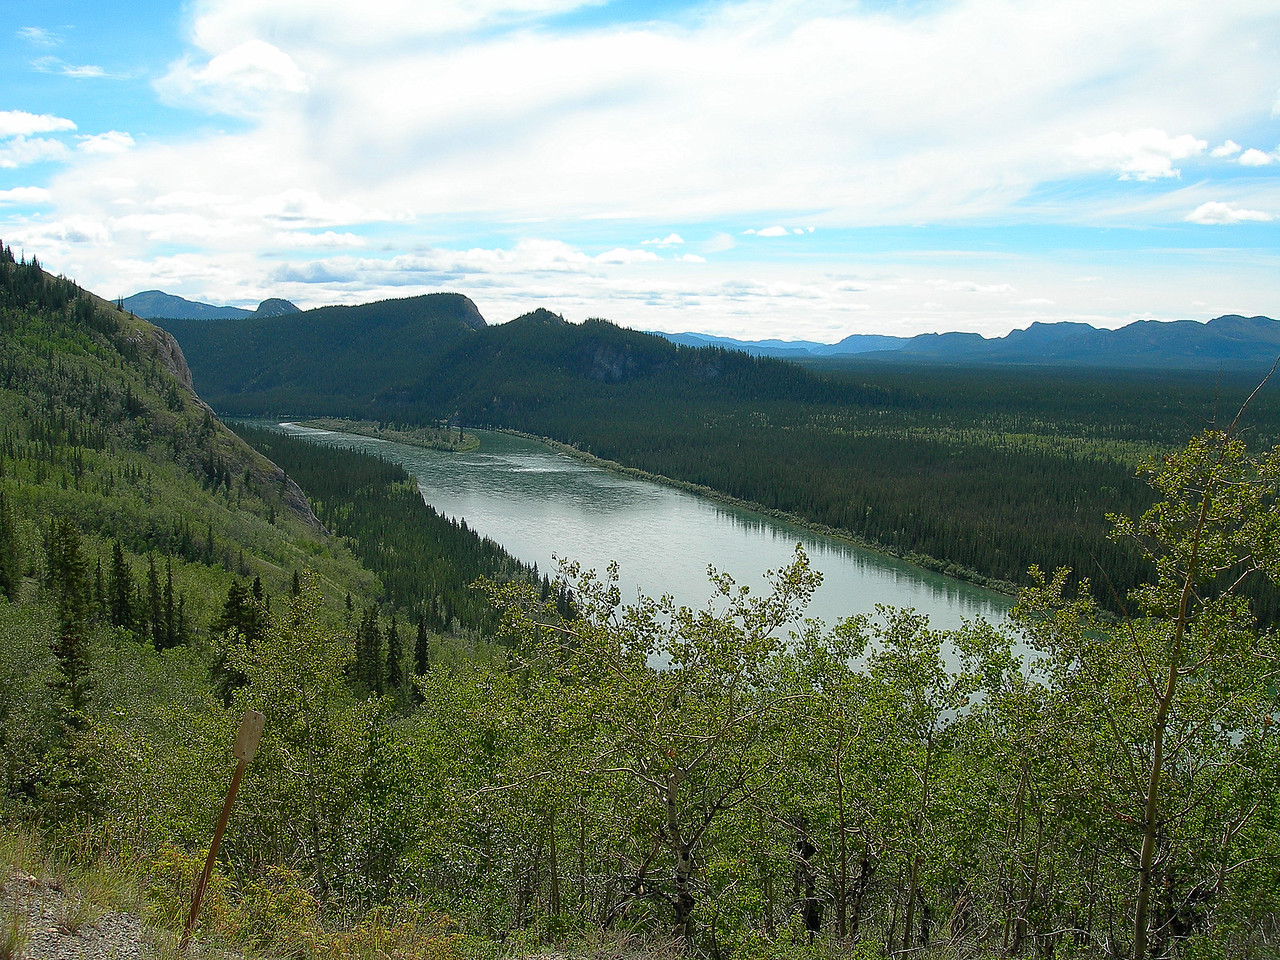 First sight of the Yukon River, which was originally the major transportation route within the Yukon Territory.